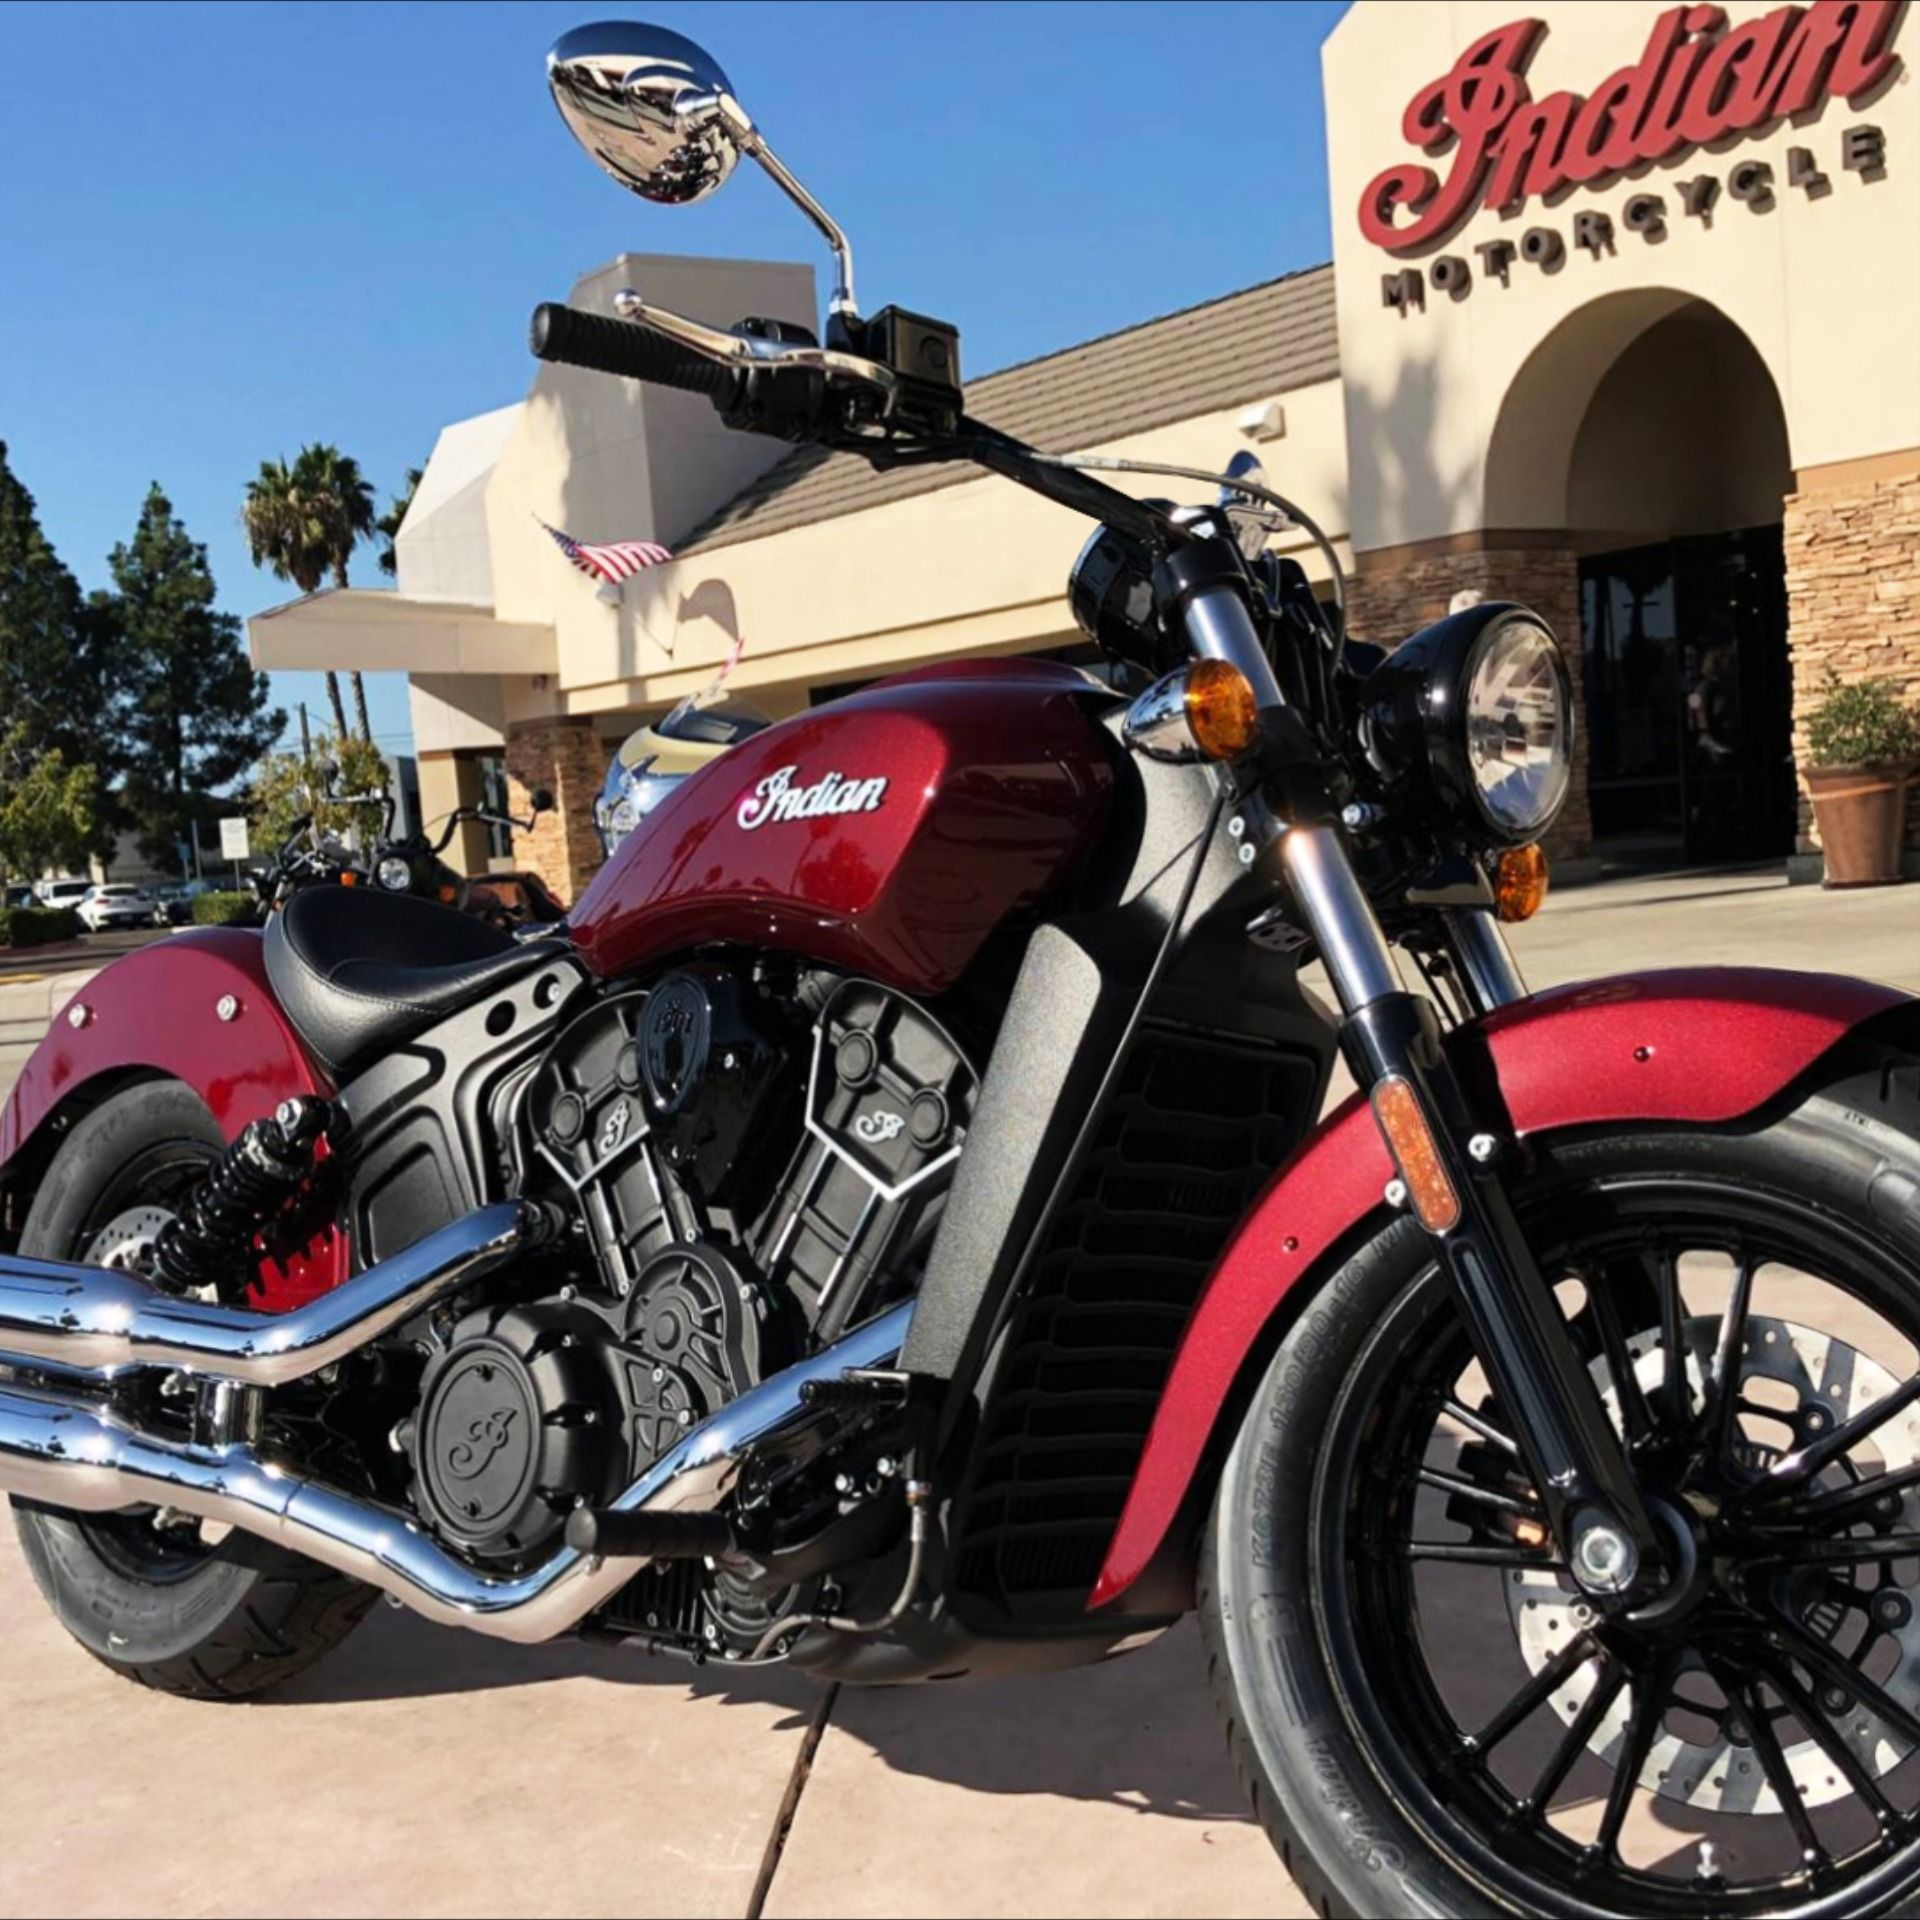 2020 Indian Motorcycle Scout Sixty Scout Sixty Indian Motorcycle Scout Motorcycle [ 1920 x 1920 Pixel ]